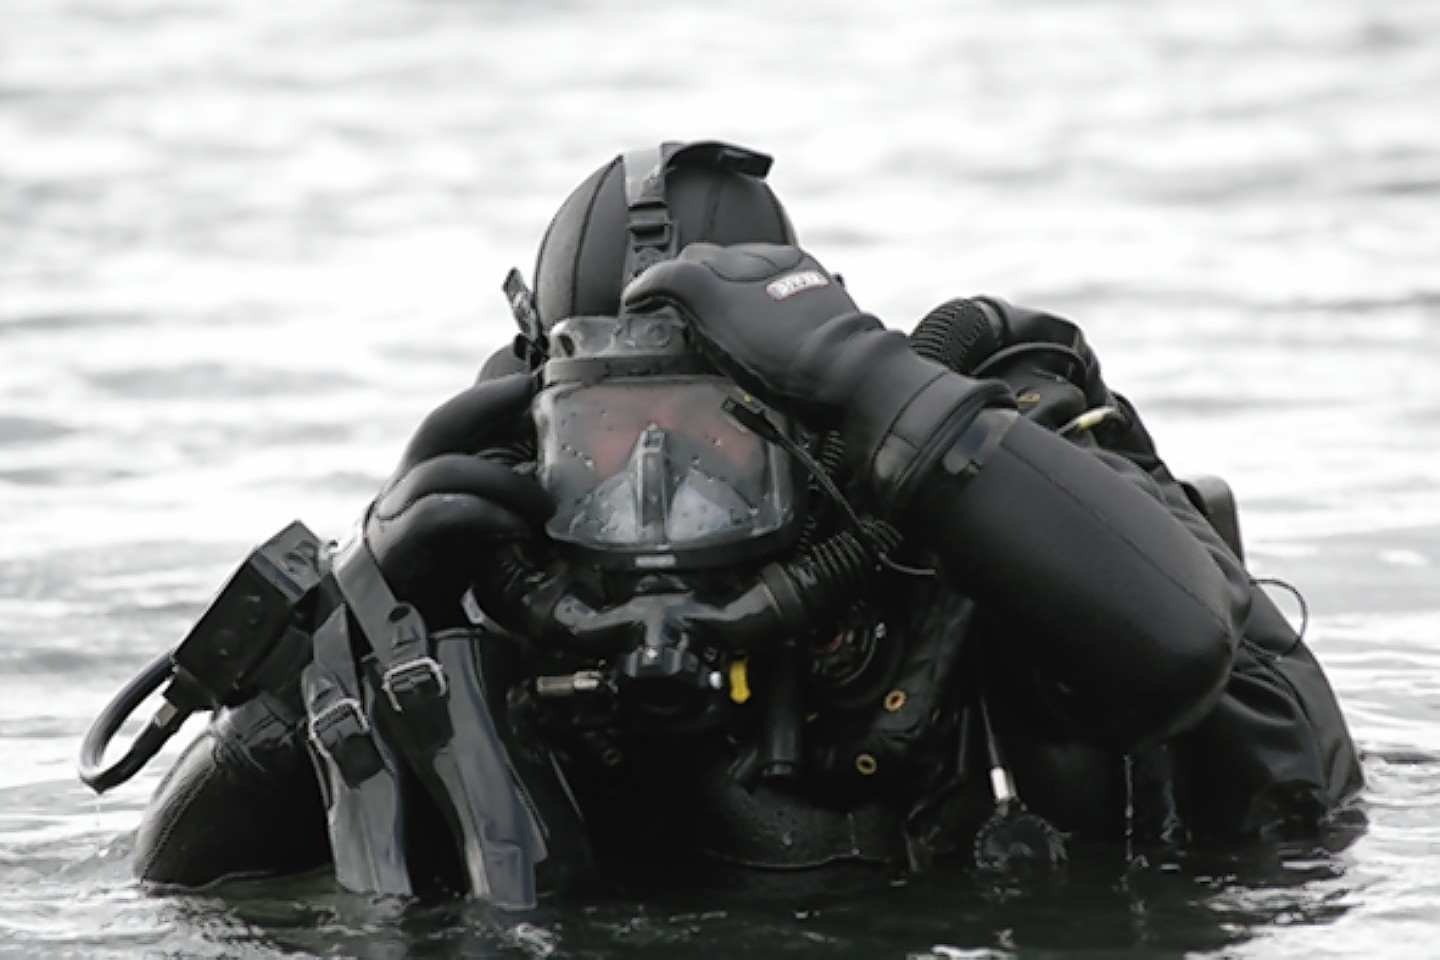 A diver with one of Divex's rebreathers